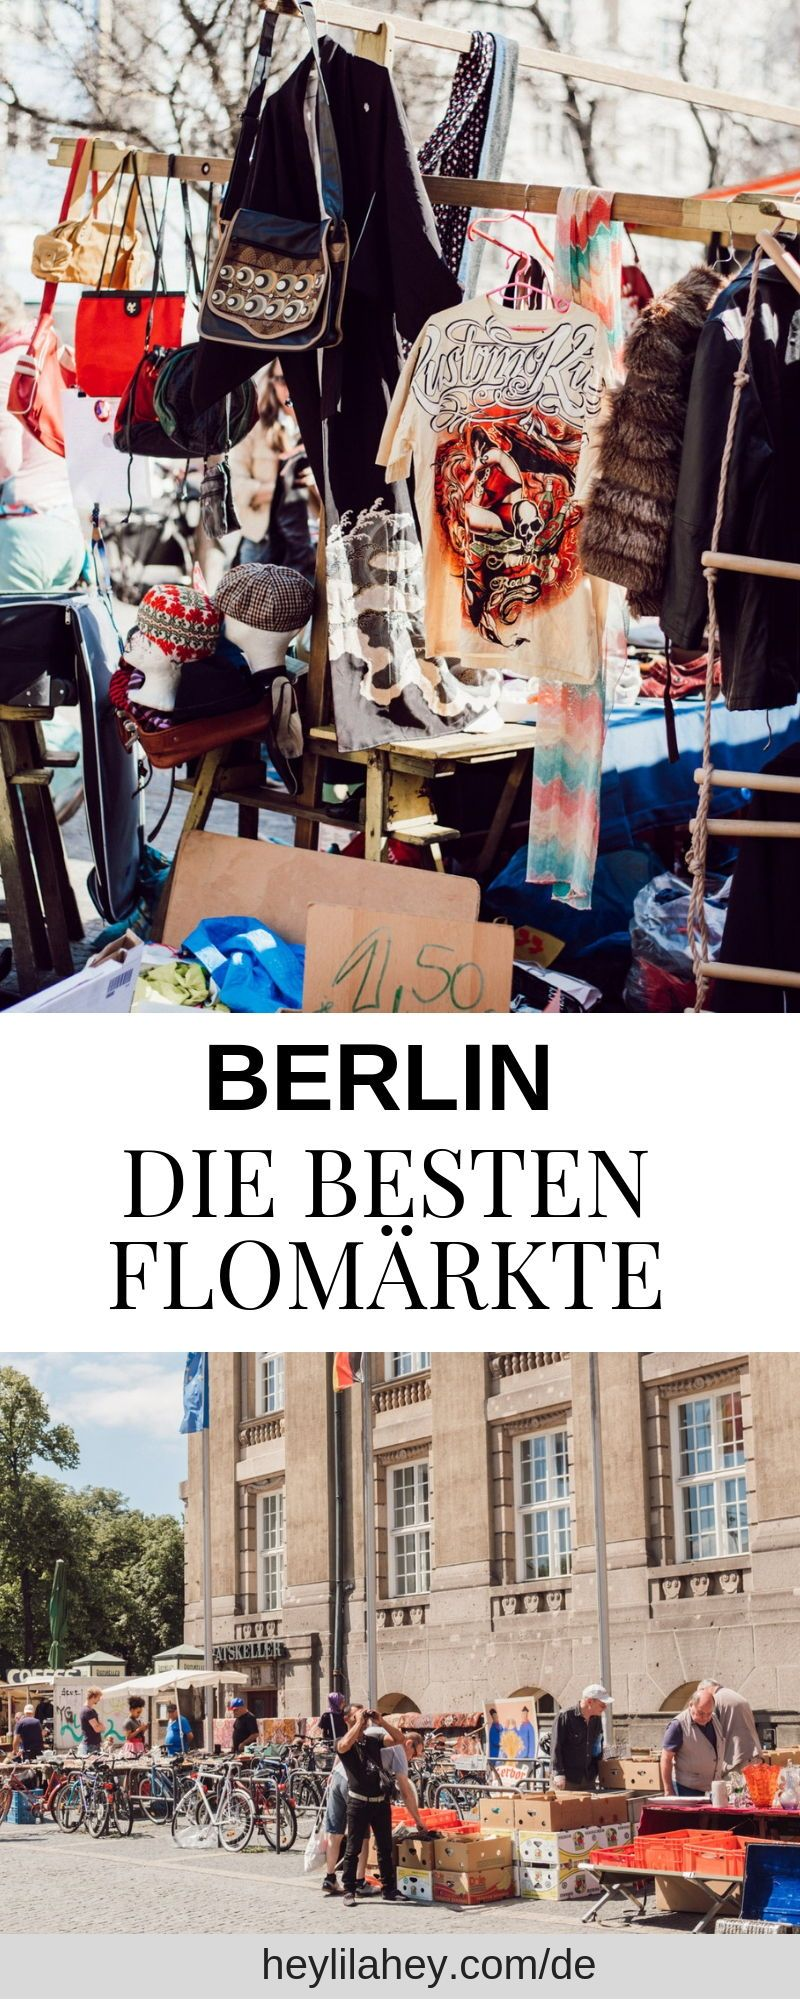 Die besten Flohmärkte in Berlin #favoriteplaces